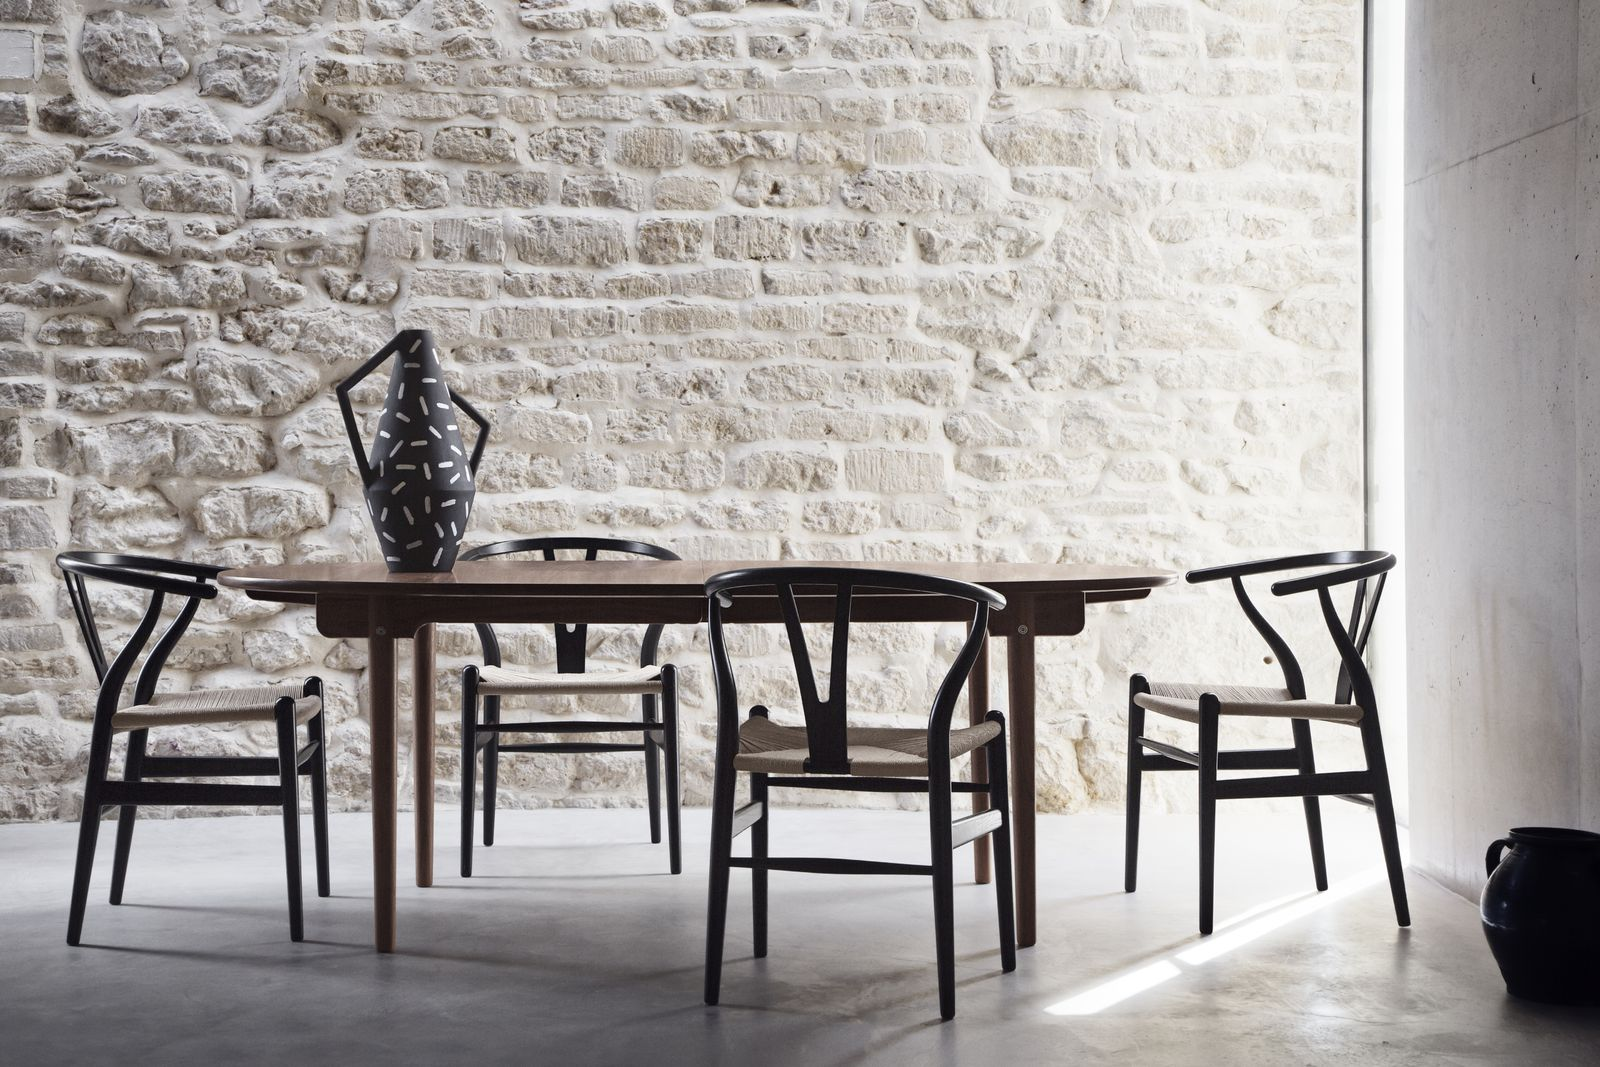 carl hansen ch24 wishbone chair available at nordic urban in berlin